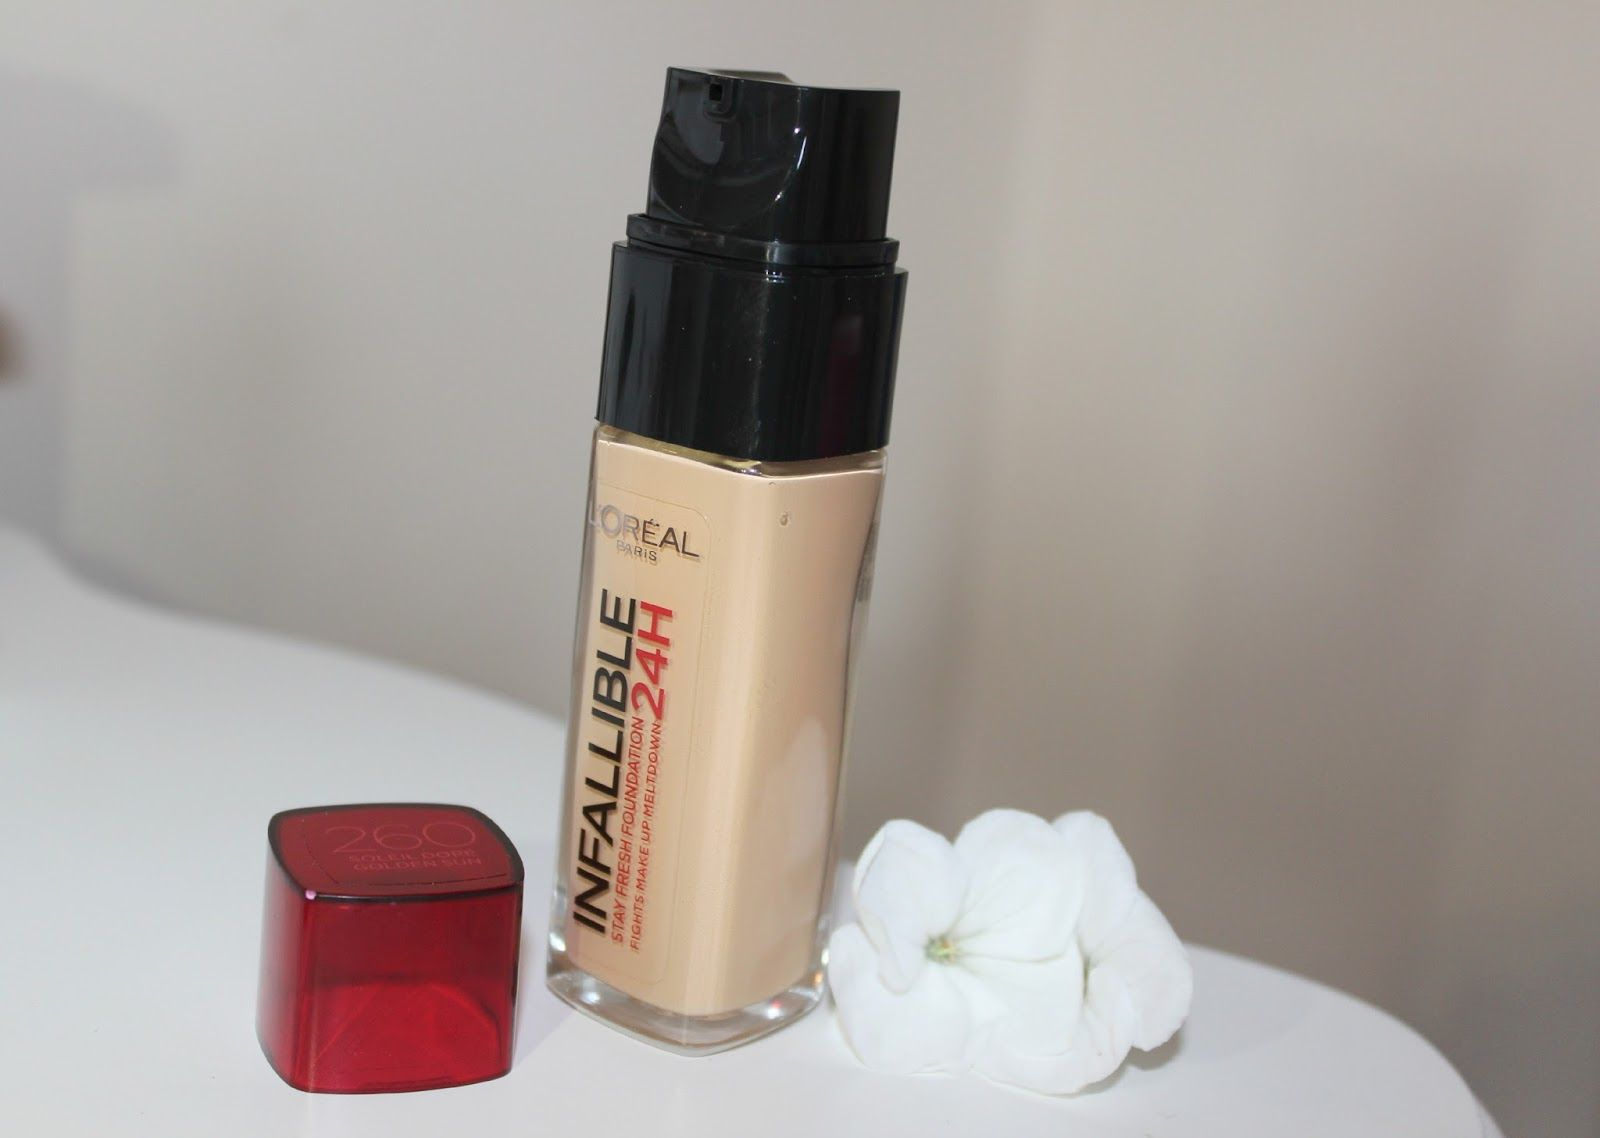 Colour care foundation - L Oreal Infallible Foundation 24hr In 260 Golden Sun Is Around The Same Colour As